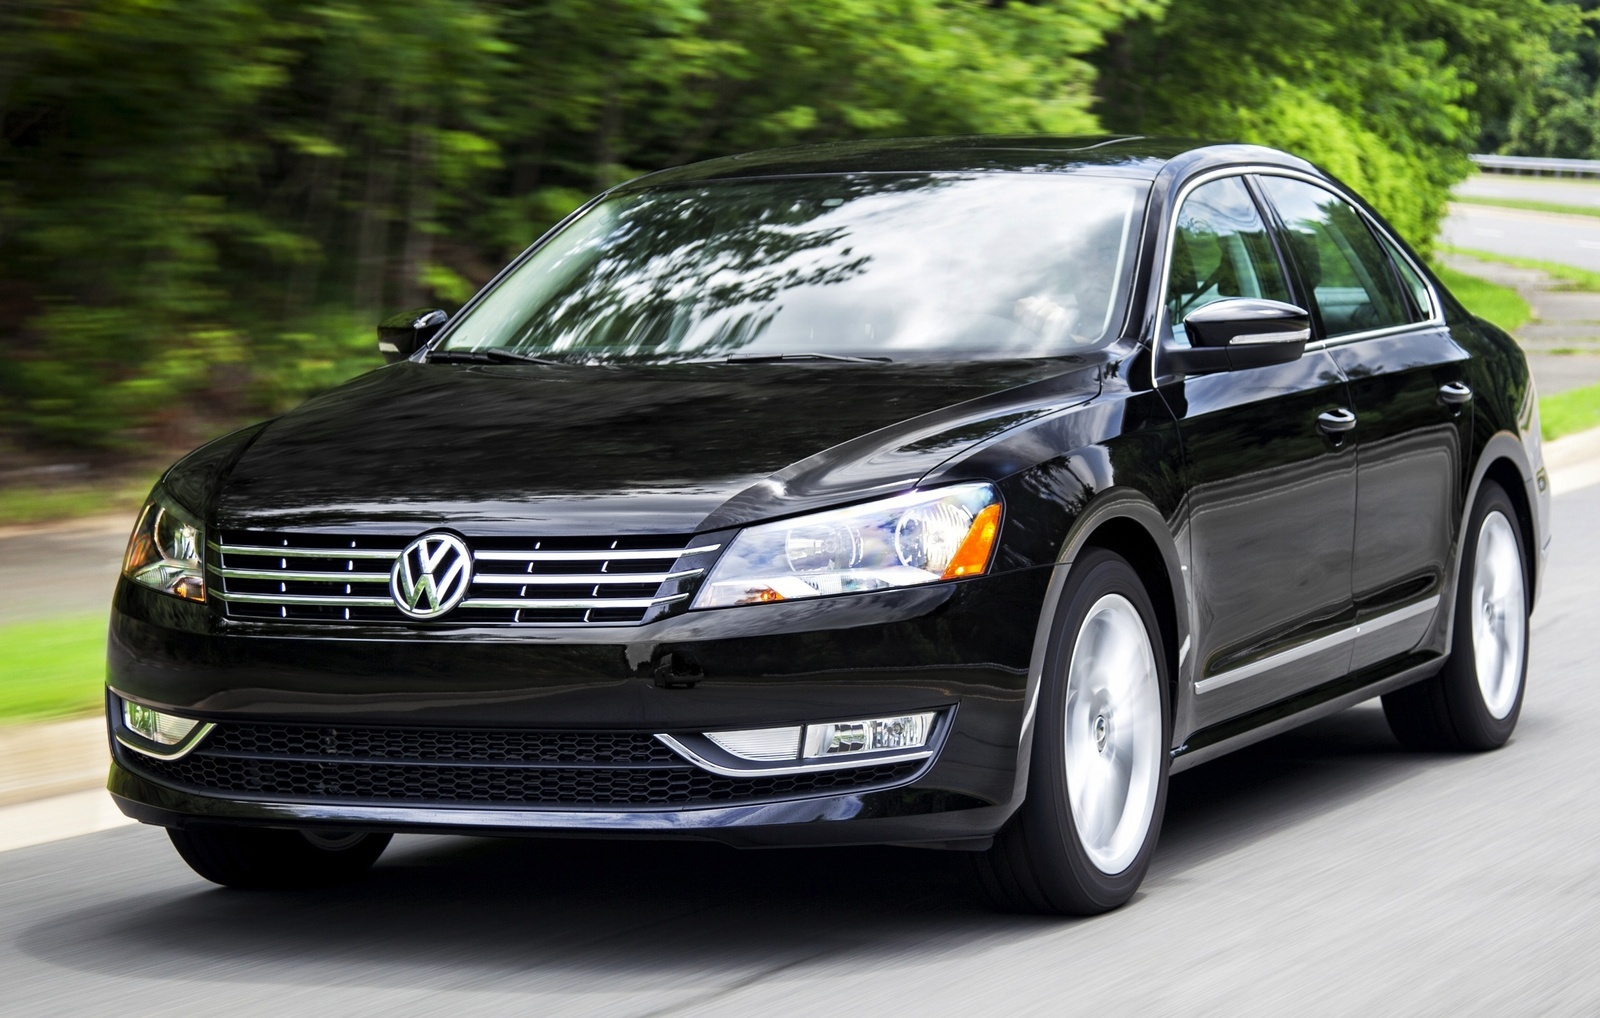 2015 volkswagen passat overview cargurus. Black Bedroom Furniture Sets. Home Design Ideas